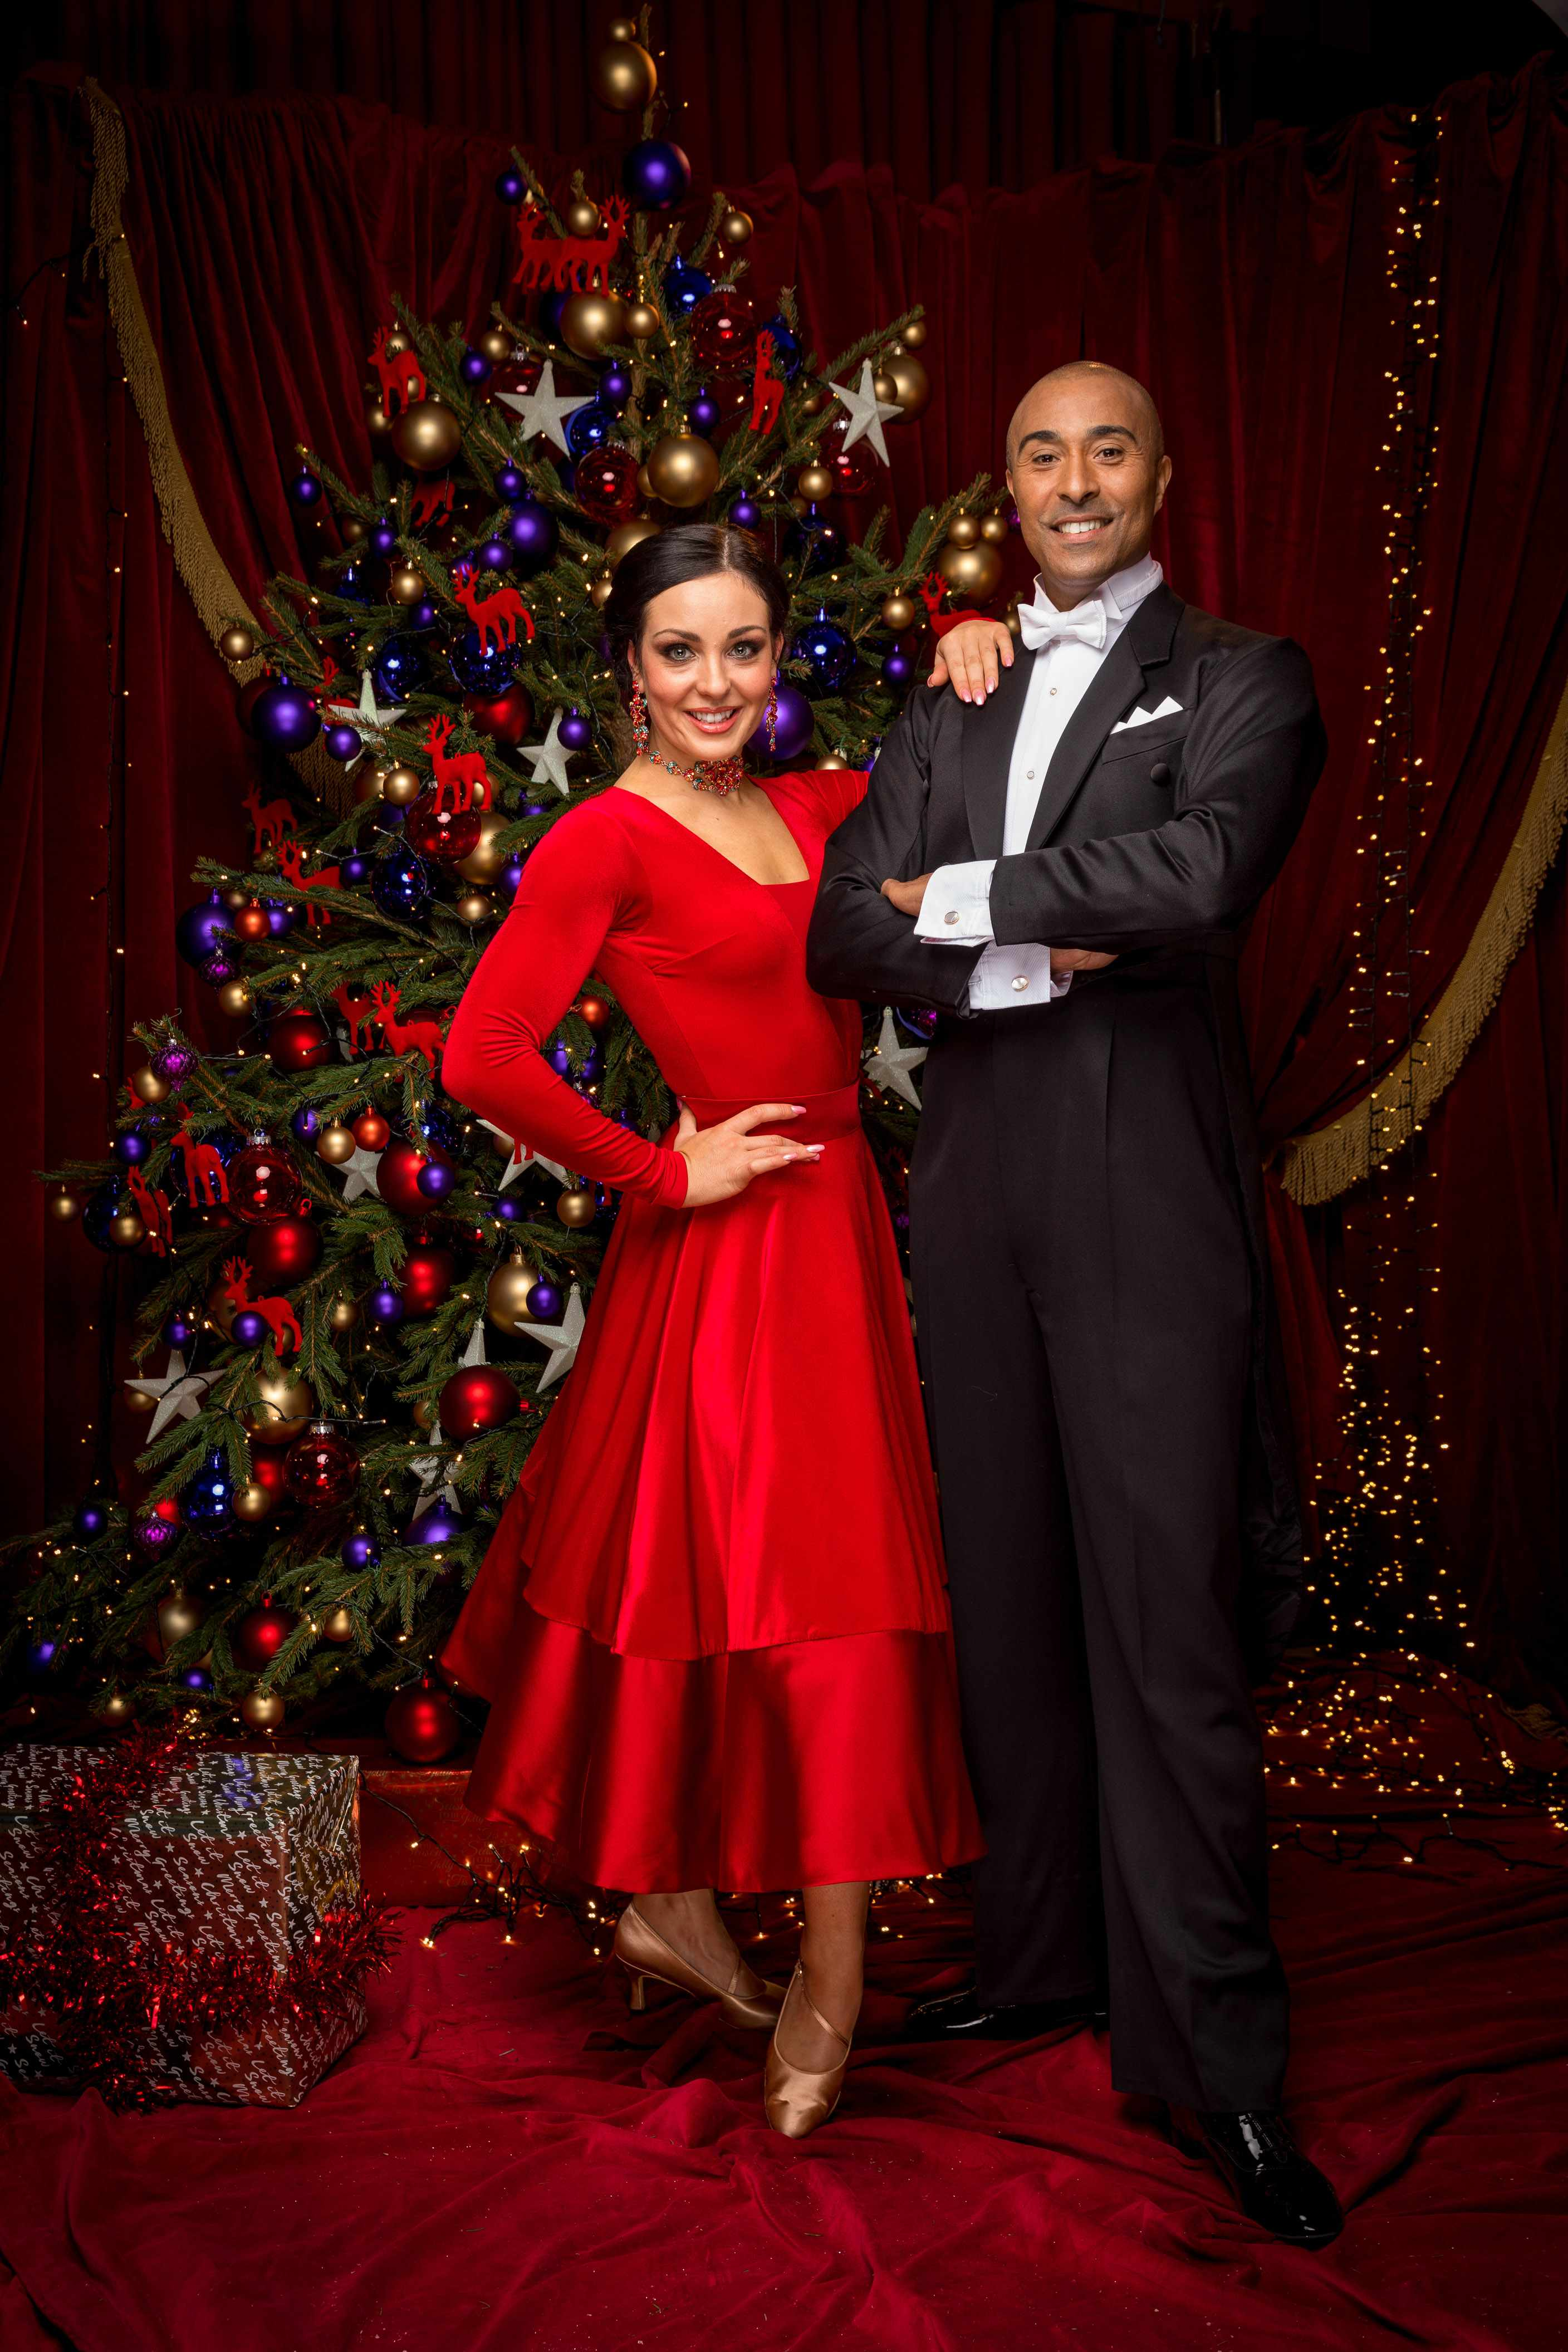 WARNING: Embargoed for publication until 00:00:01 on 09/12/2017 - Programme Name: Strictly Come Dancing Christmas Special 2017 - TX: n/a - Episode: Strictly Come Dancing Christmas Special 2017 (No. n/a) - Picture Shows: **EMBARGOED FOR PUBLICATION UNTIL 00:00 HRS ON SATURDAY 9TH DECEMBER 2017** Amy Dowden, Colin Jackson - (C) BBC - Photographer: Guy Levy (BBC, TL)